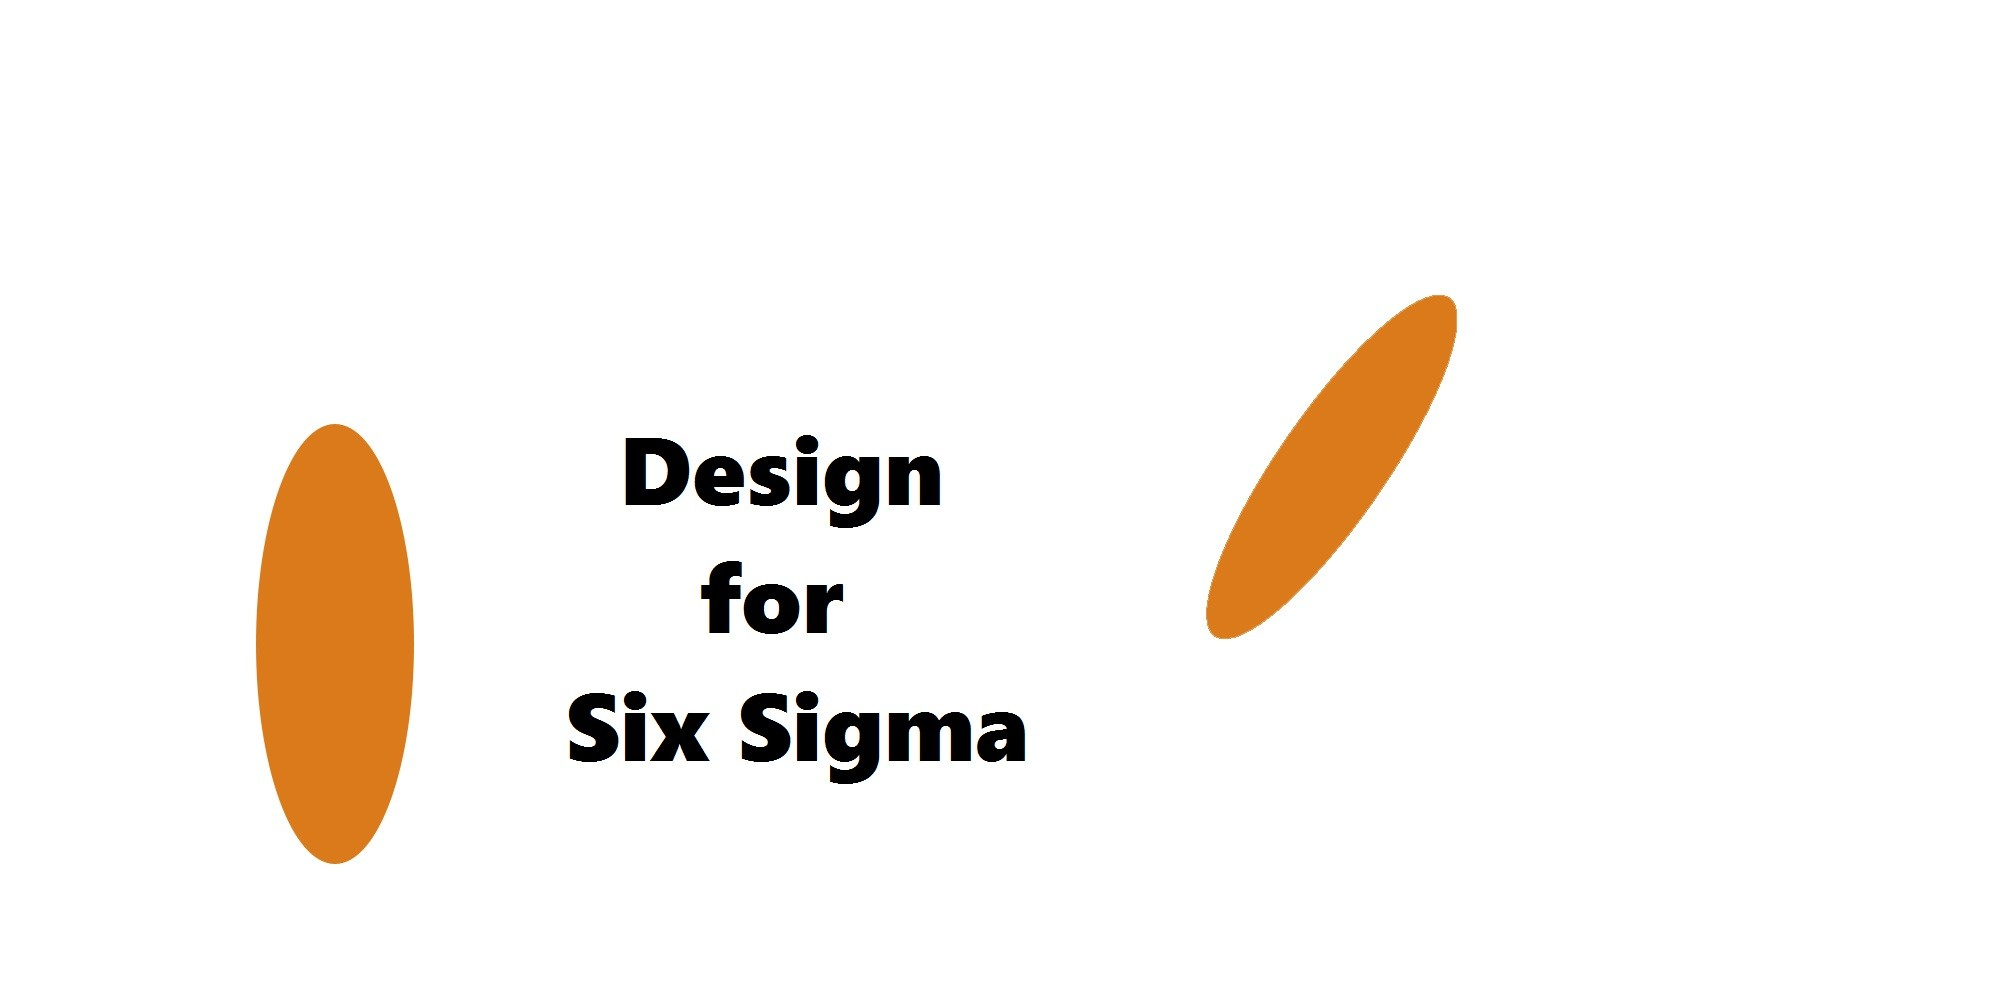 Design For Six Sigma Dfss Course And Certification Exam Lean Six